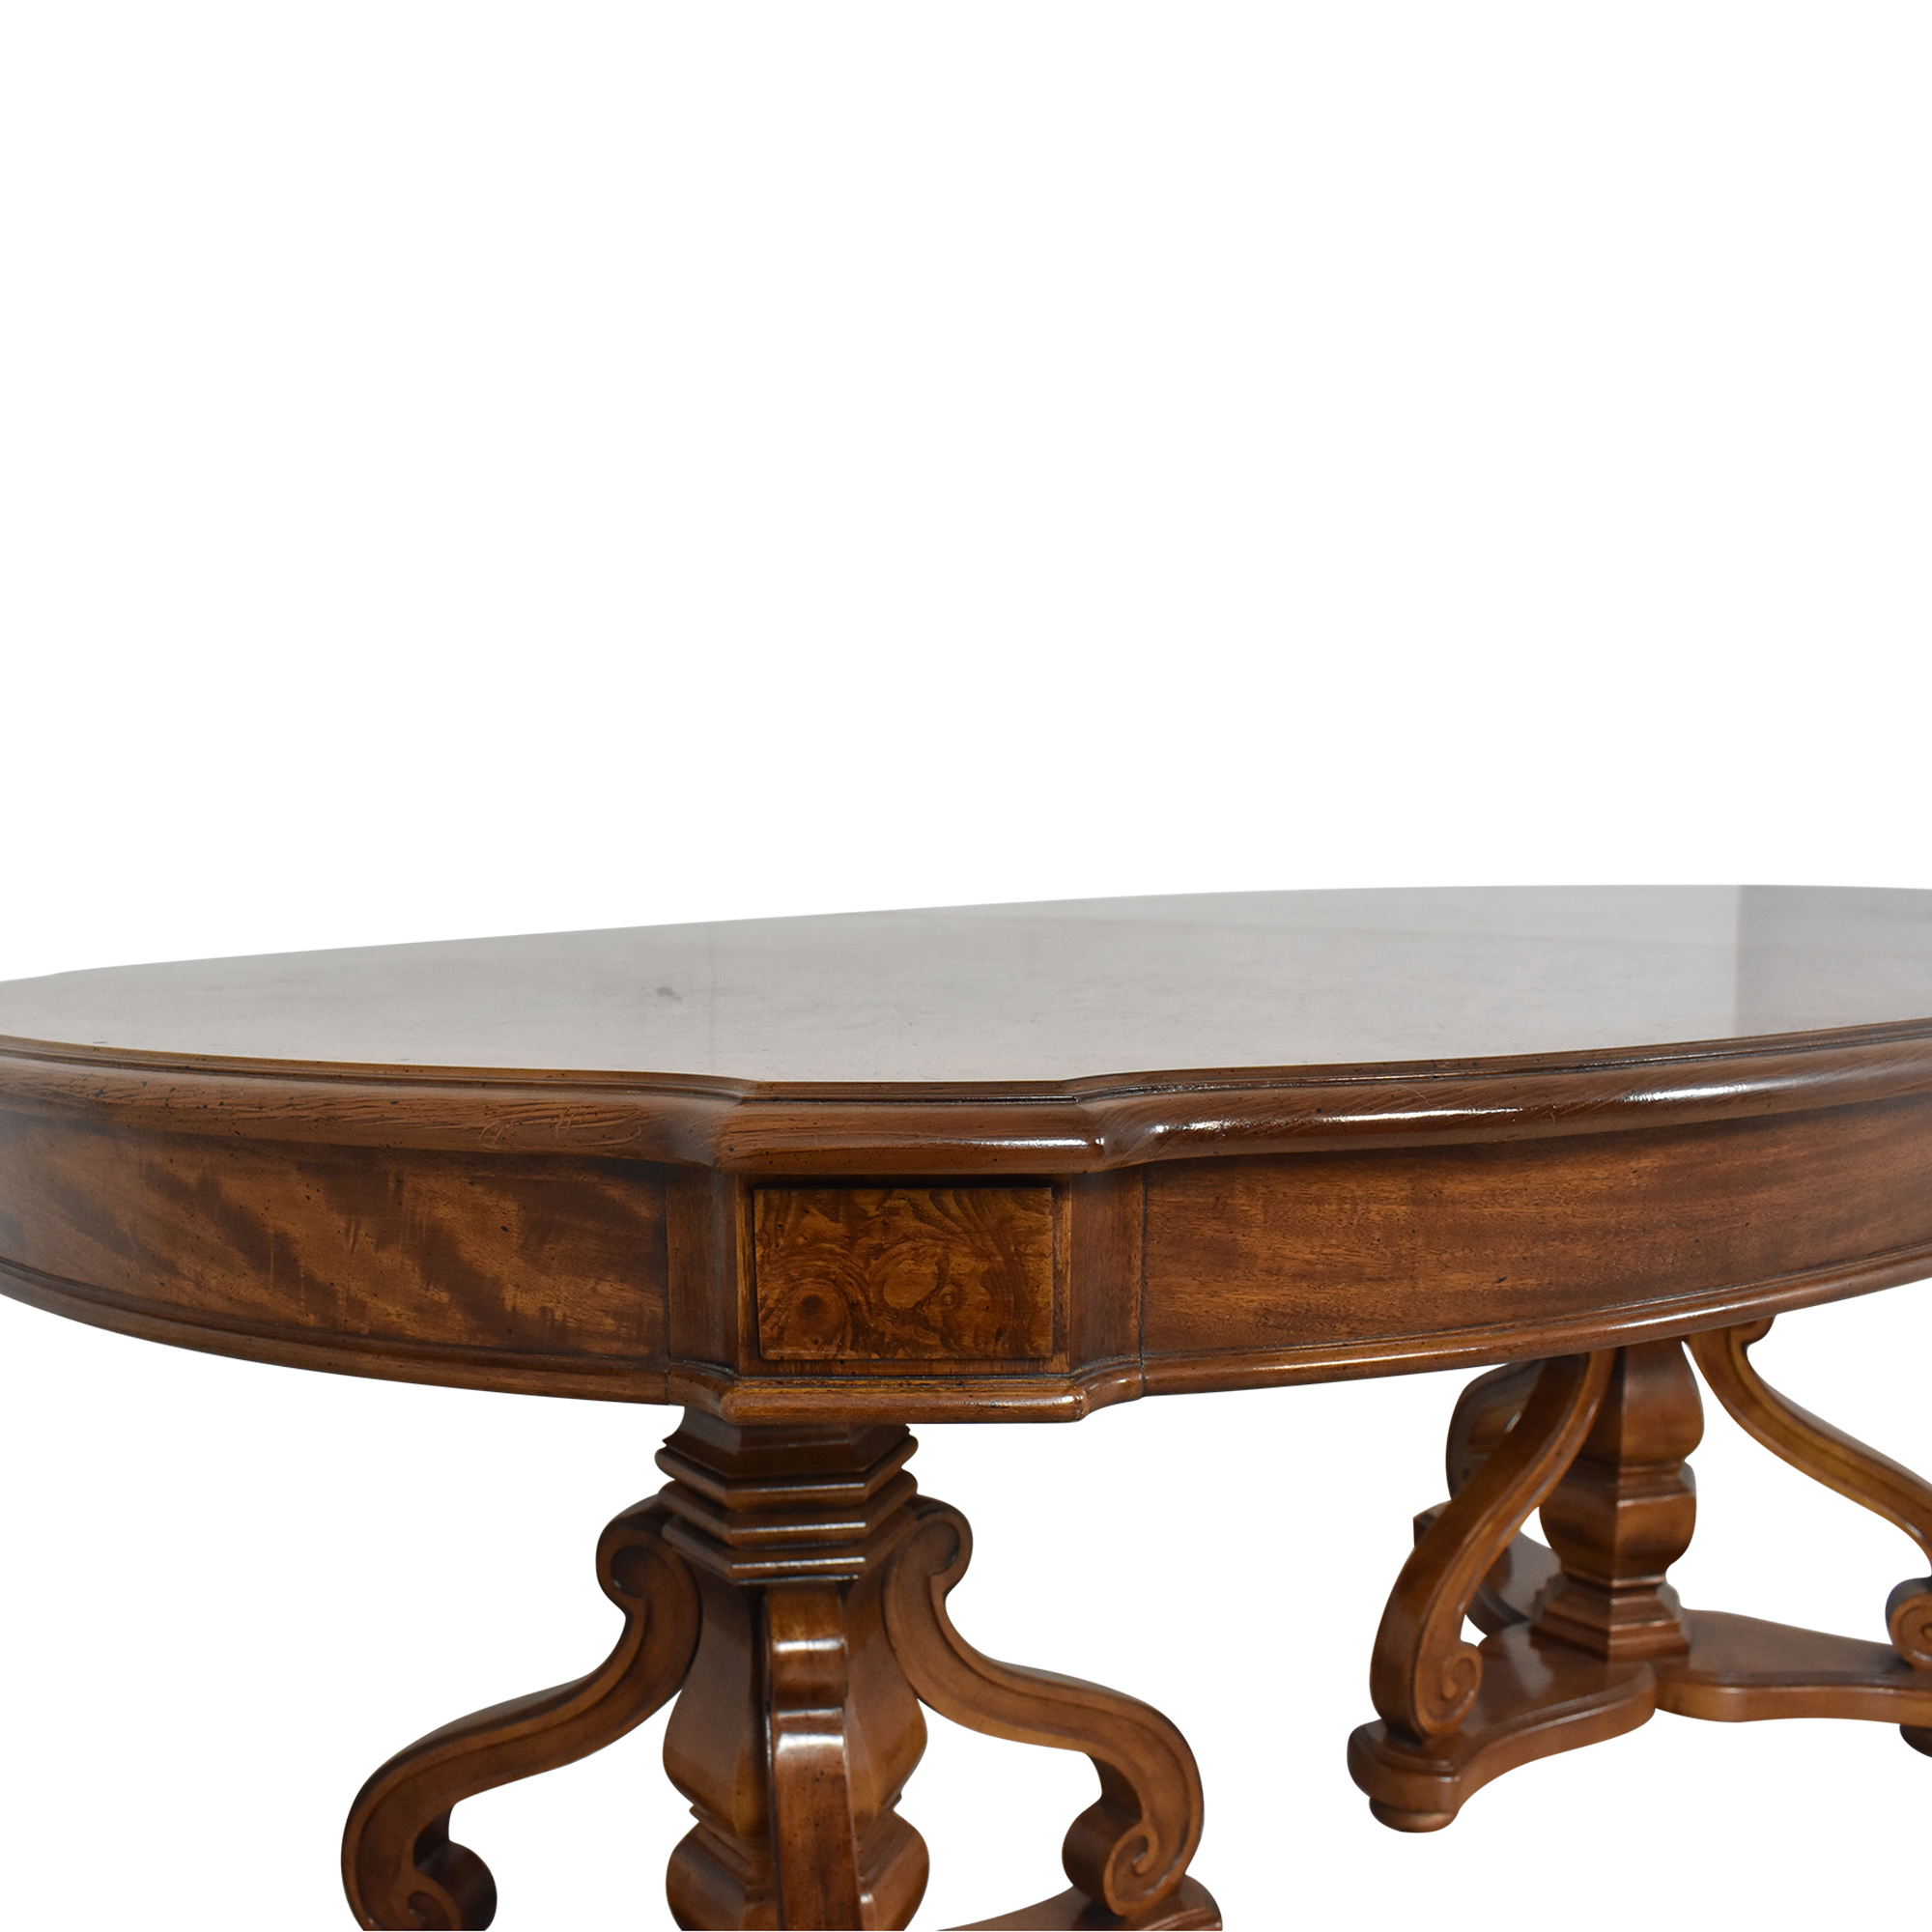 Thomasville Thomasville Extension Dining Table second hand